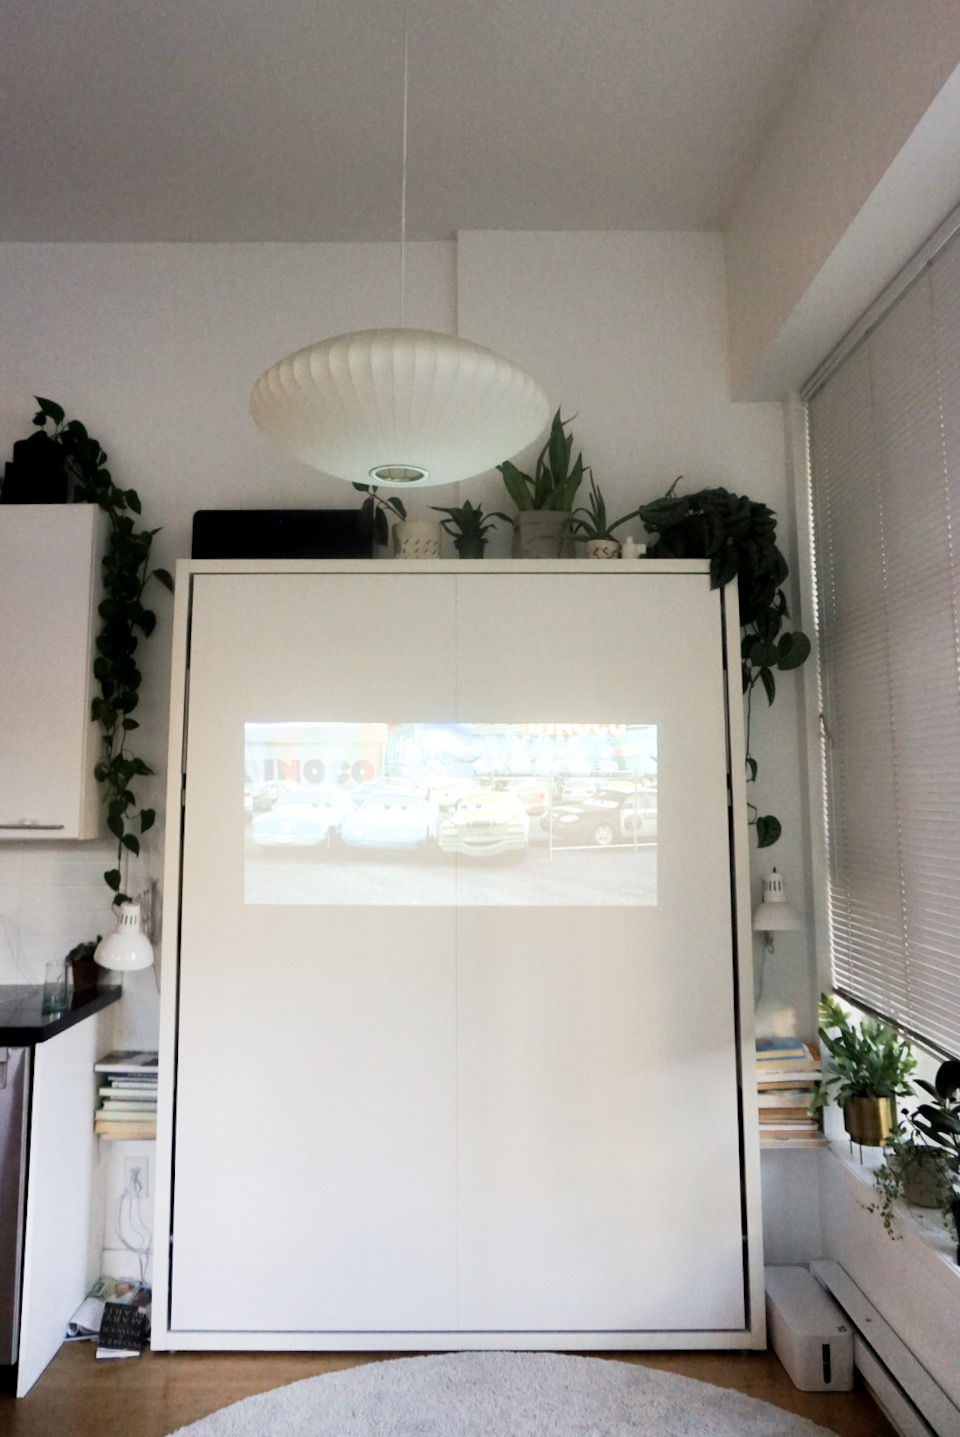 The projector in the day